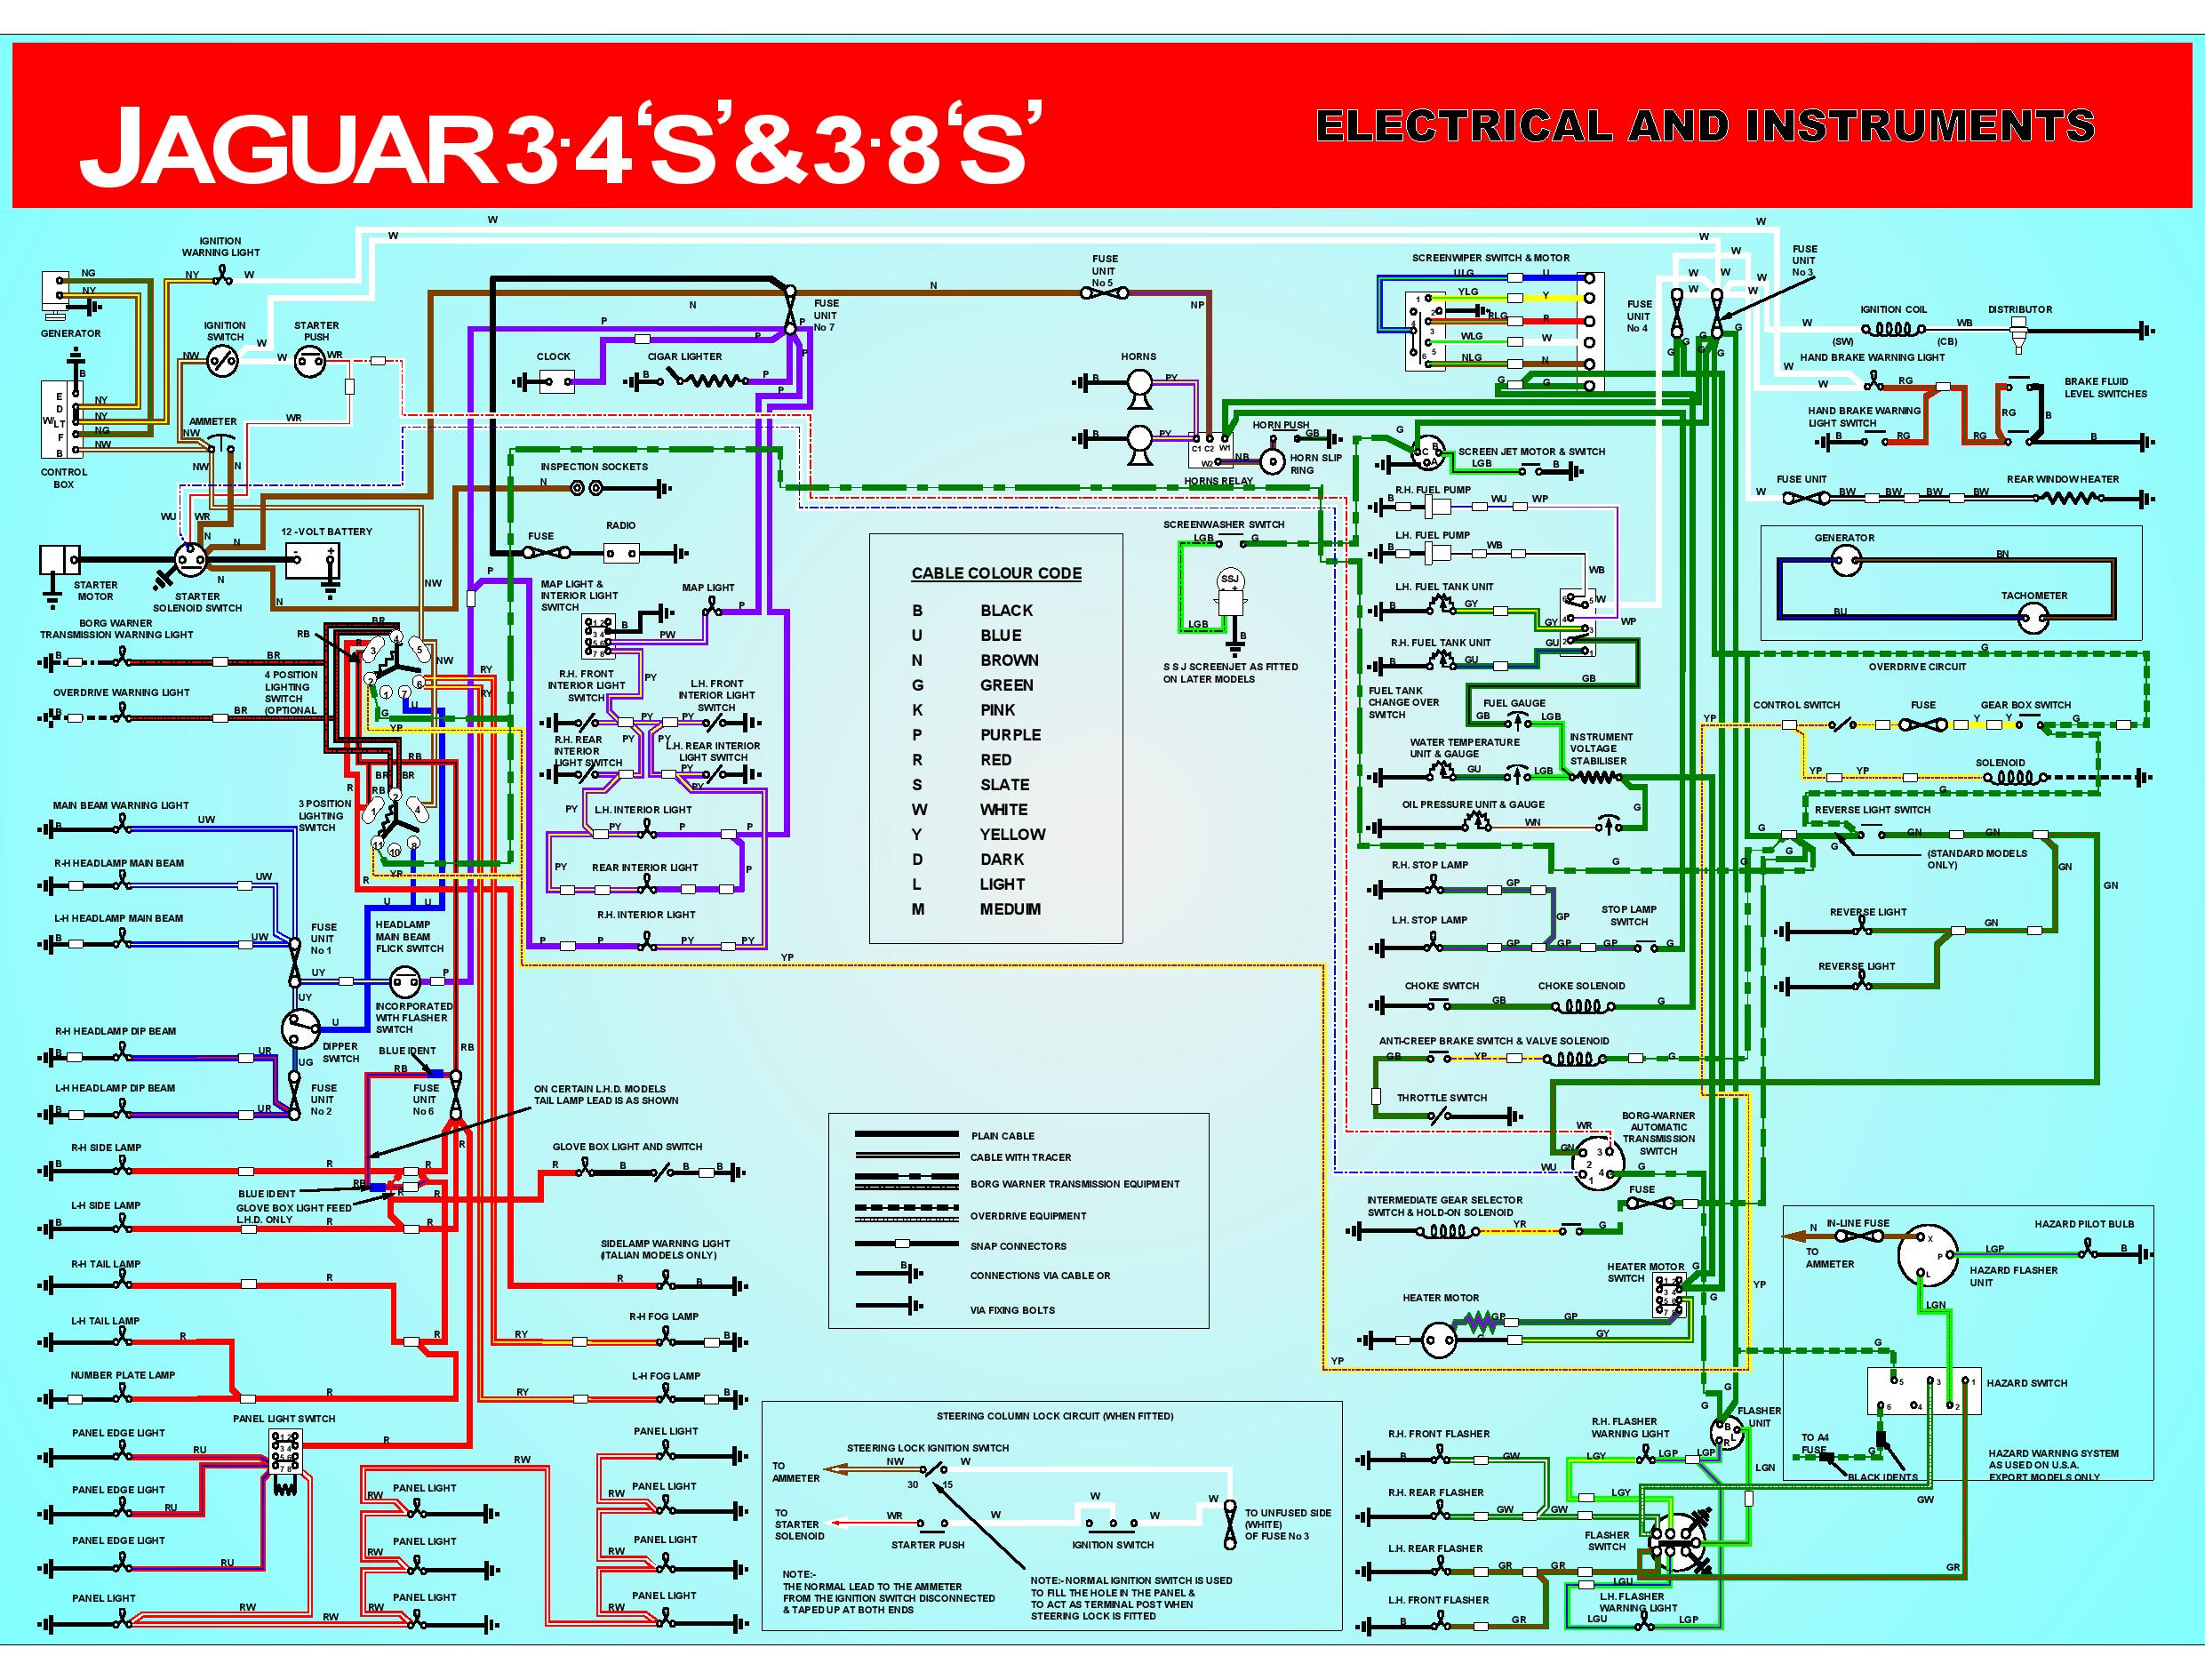 S type wiring page diagrams 633455 jaguar s type wiring diagram stype electrical jaguar x type radio wiring harness at virtualis.co